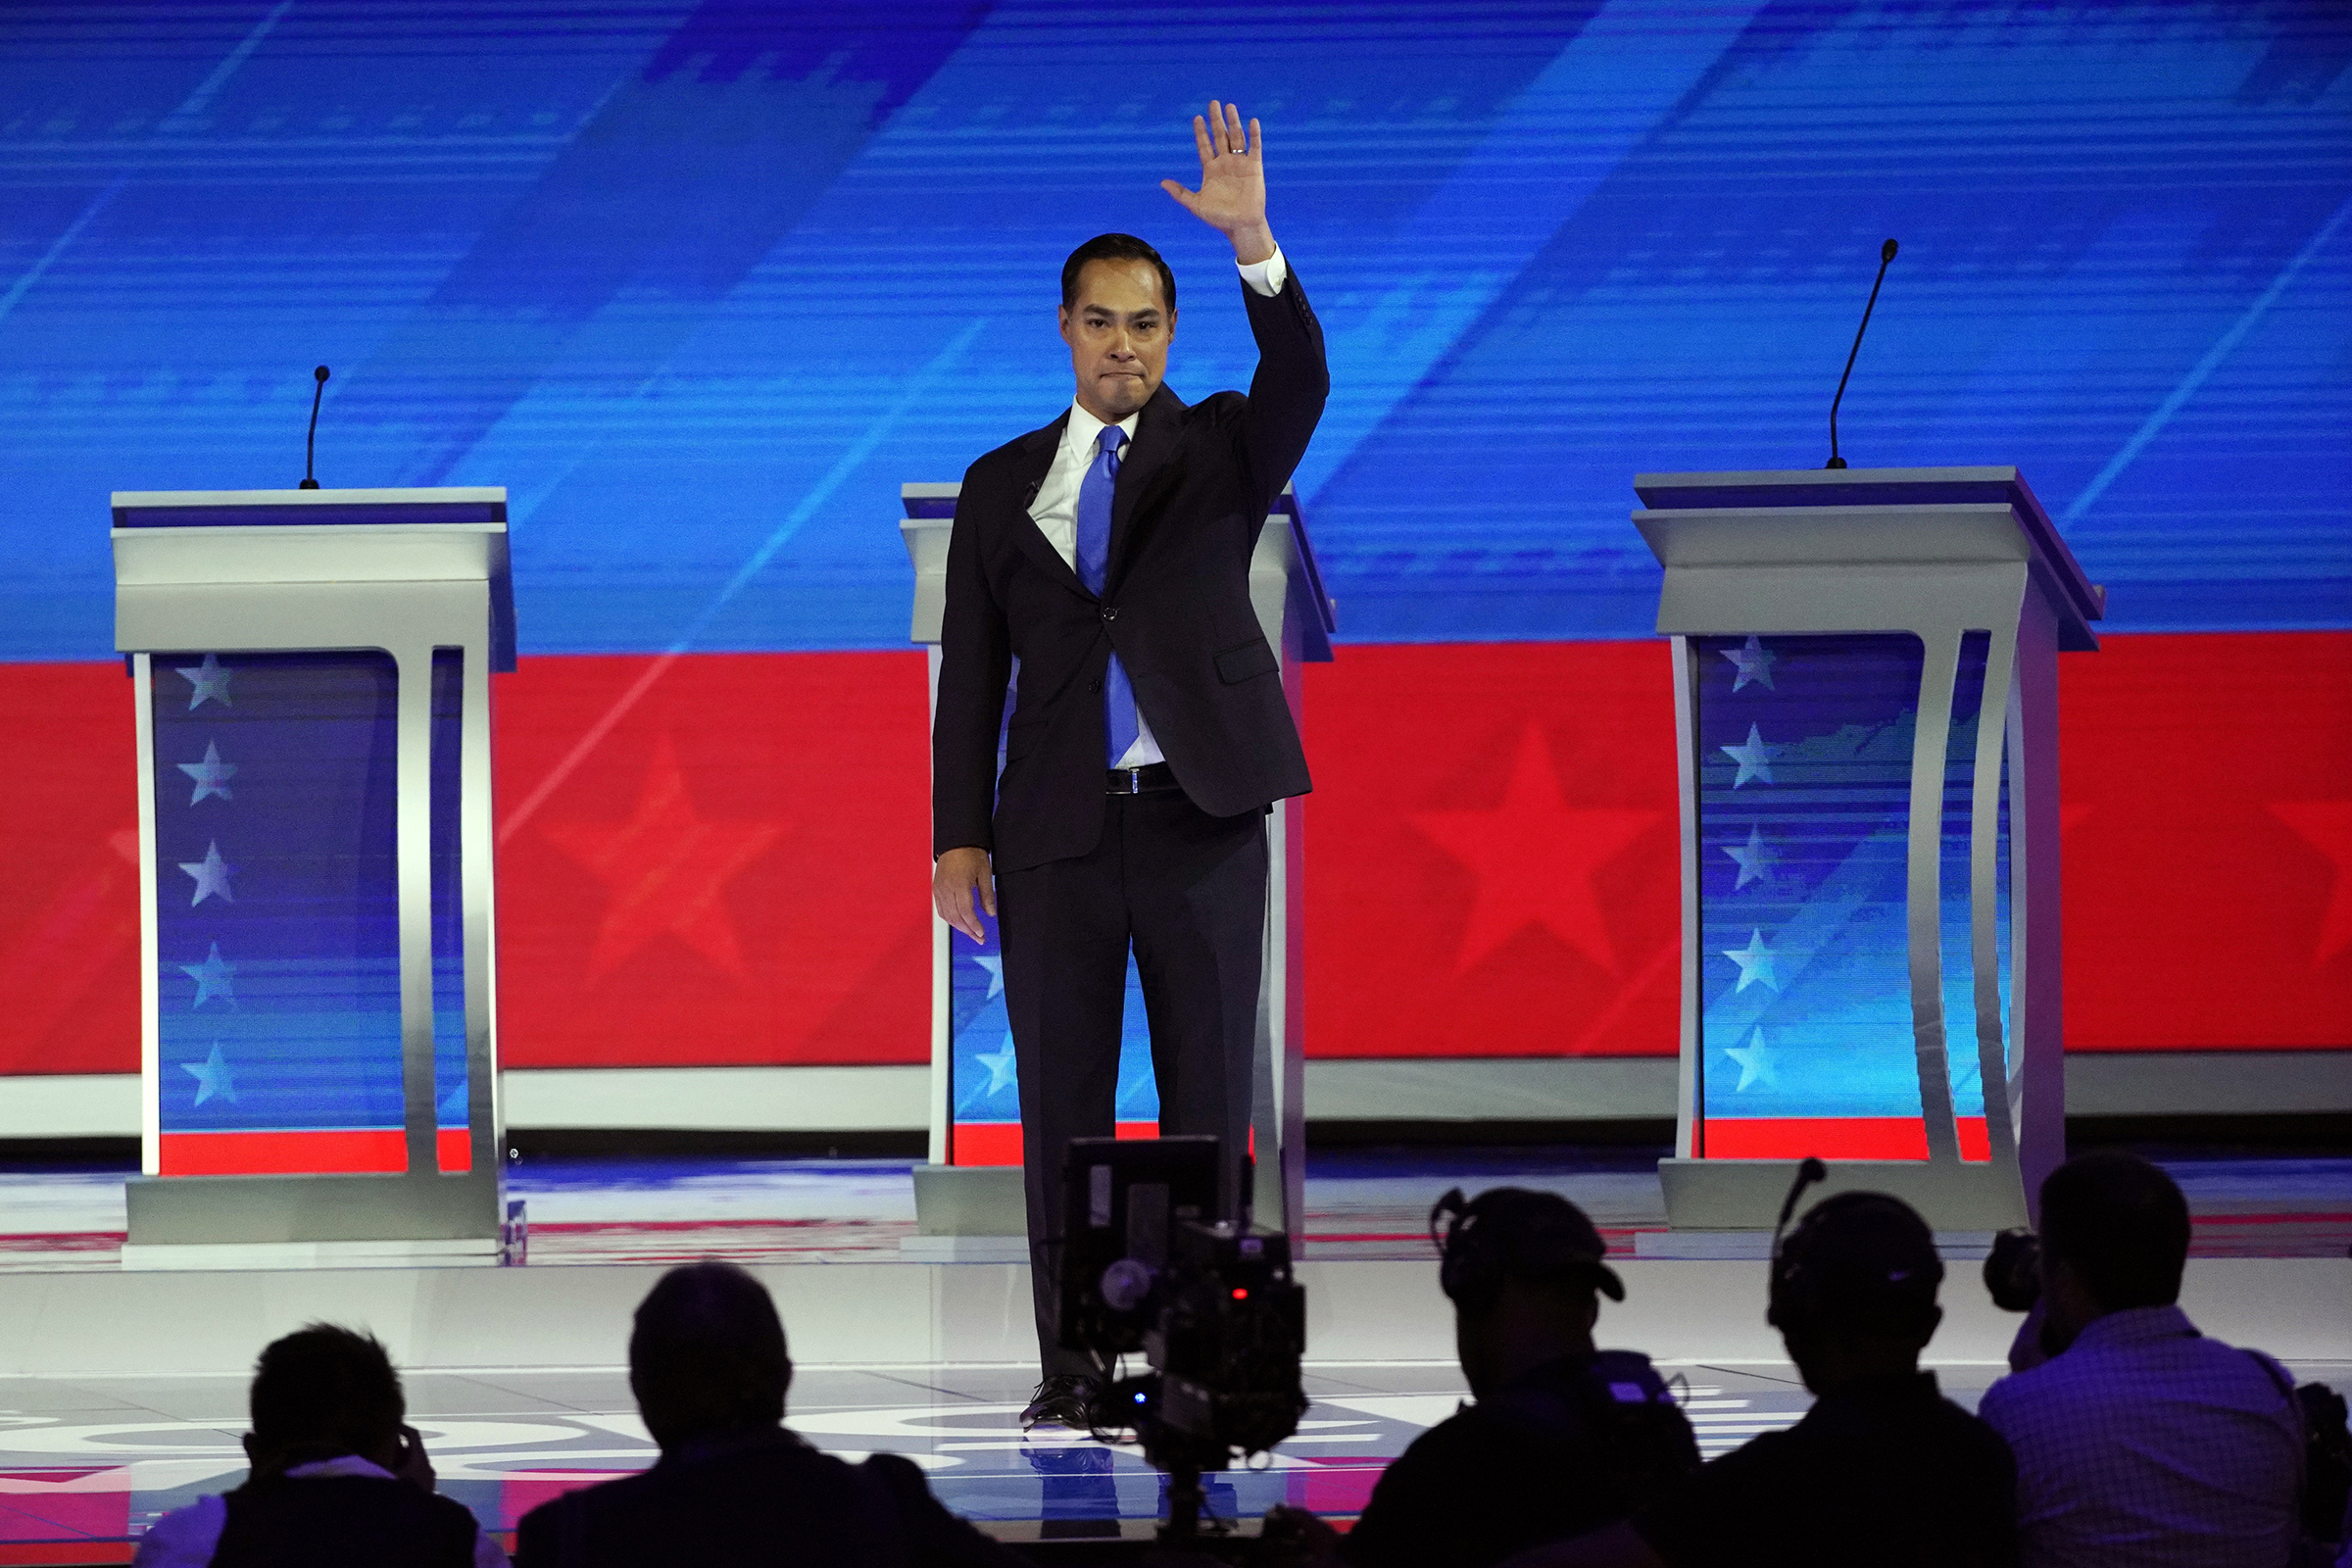 Former Housing and Urban Development Secretary Julian Castro waves as he takes the stage Thursday, Sept. 12, 2019, during a Democratic presidential primary debate at Texas Southern University in Houston.